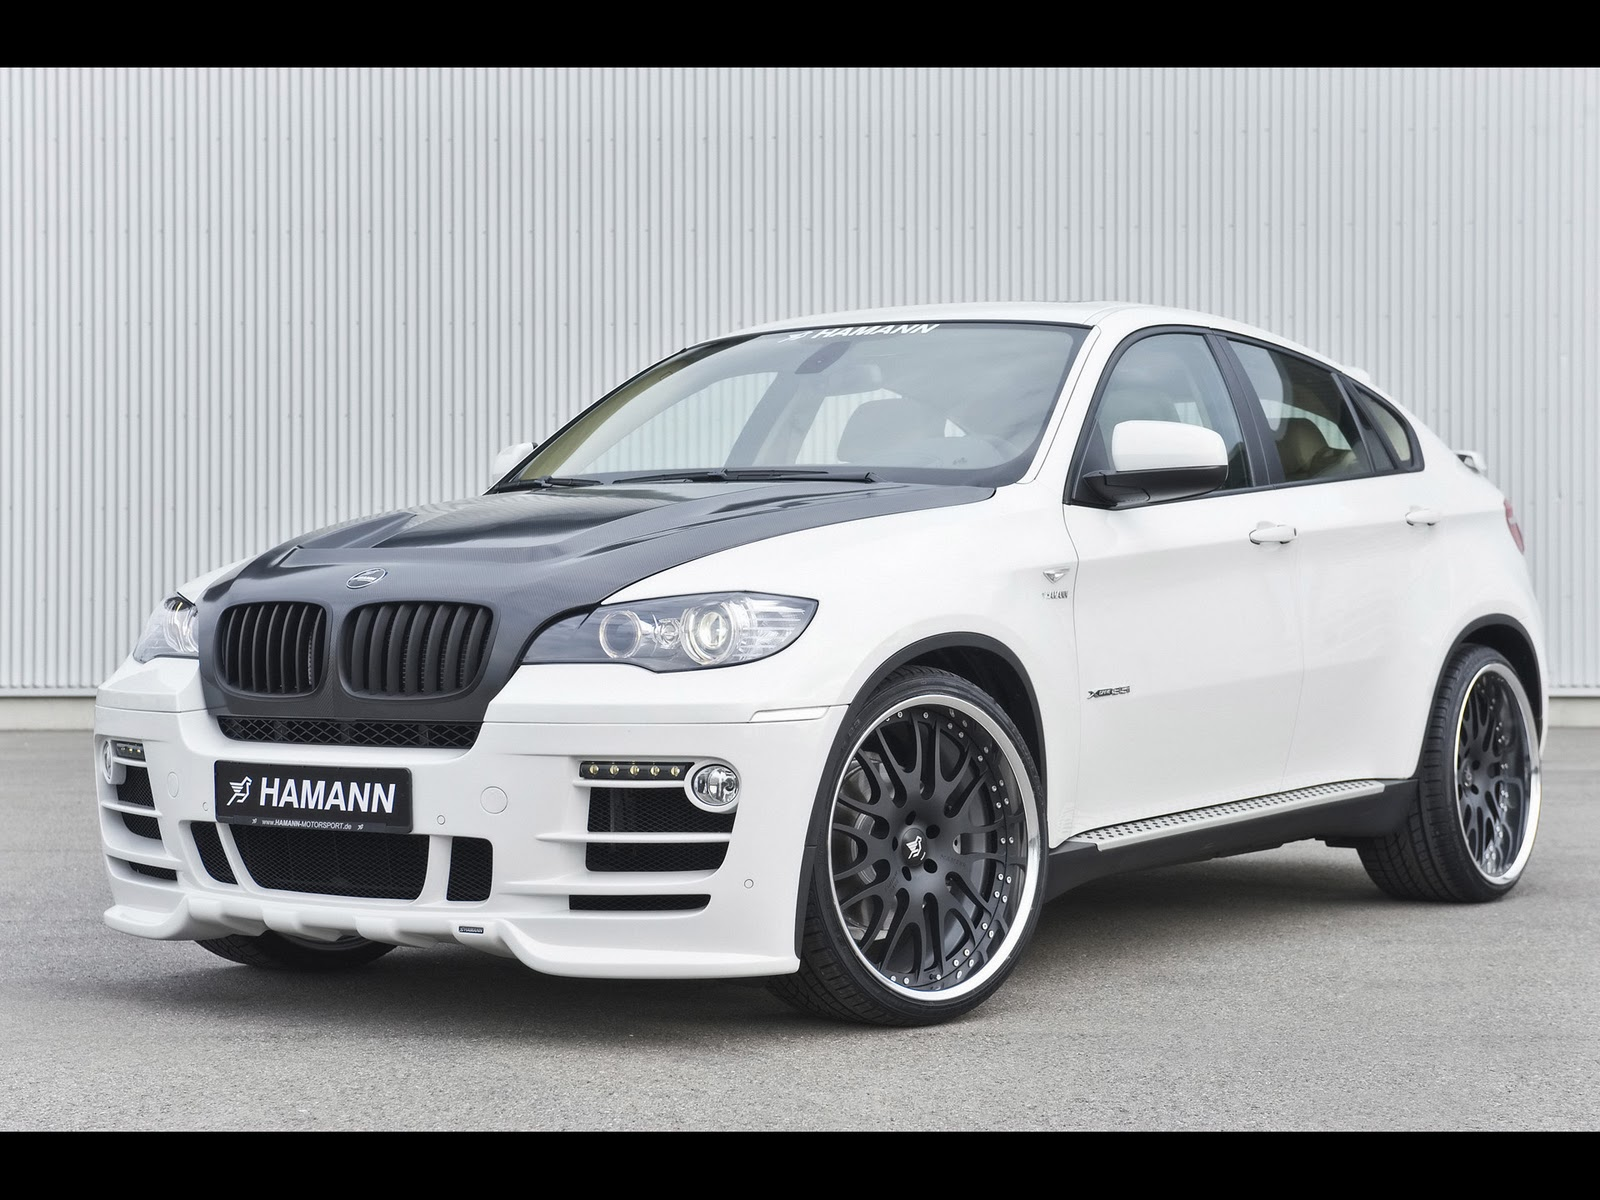 cars hd wallpapers 2009 hamann bmw x6. Black Bedroom Furniture Sets. Home Design Ideas